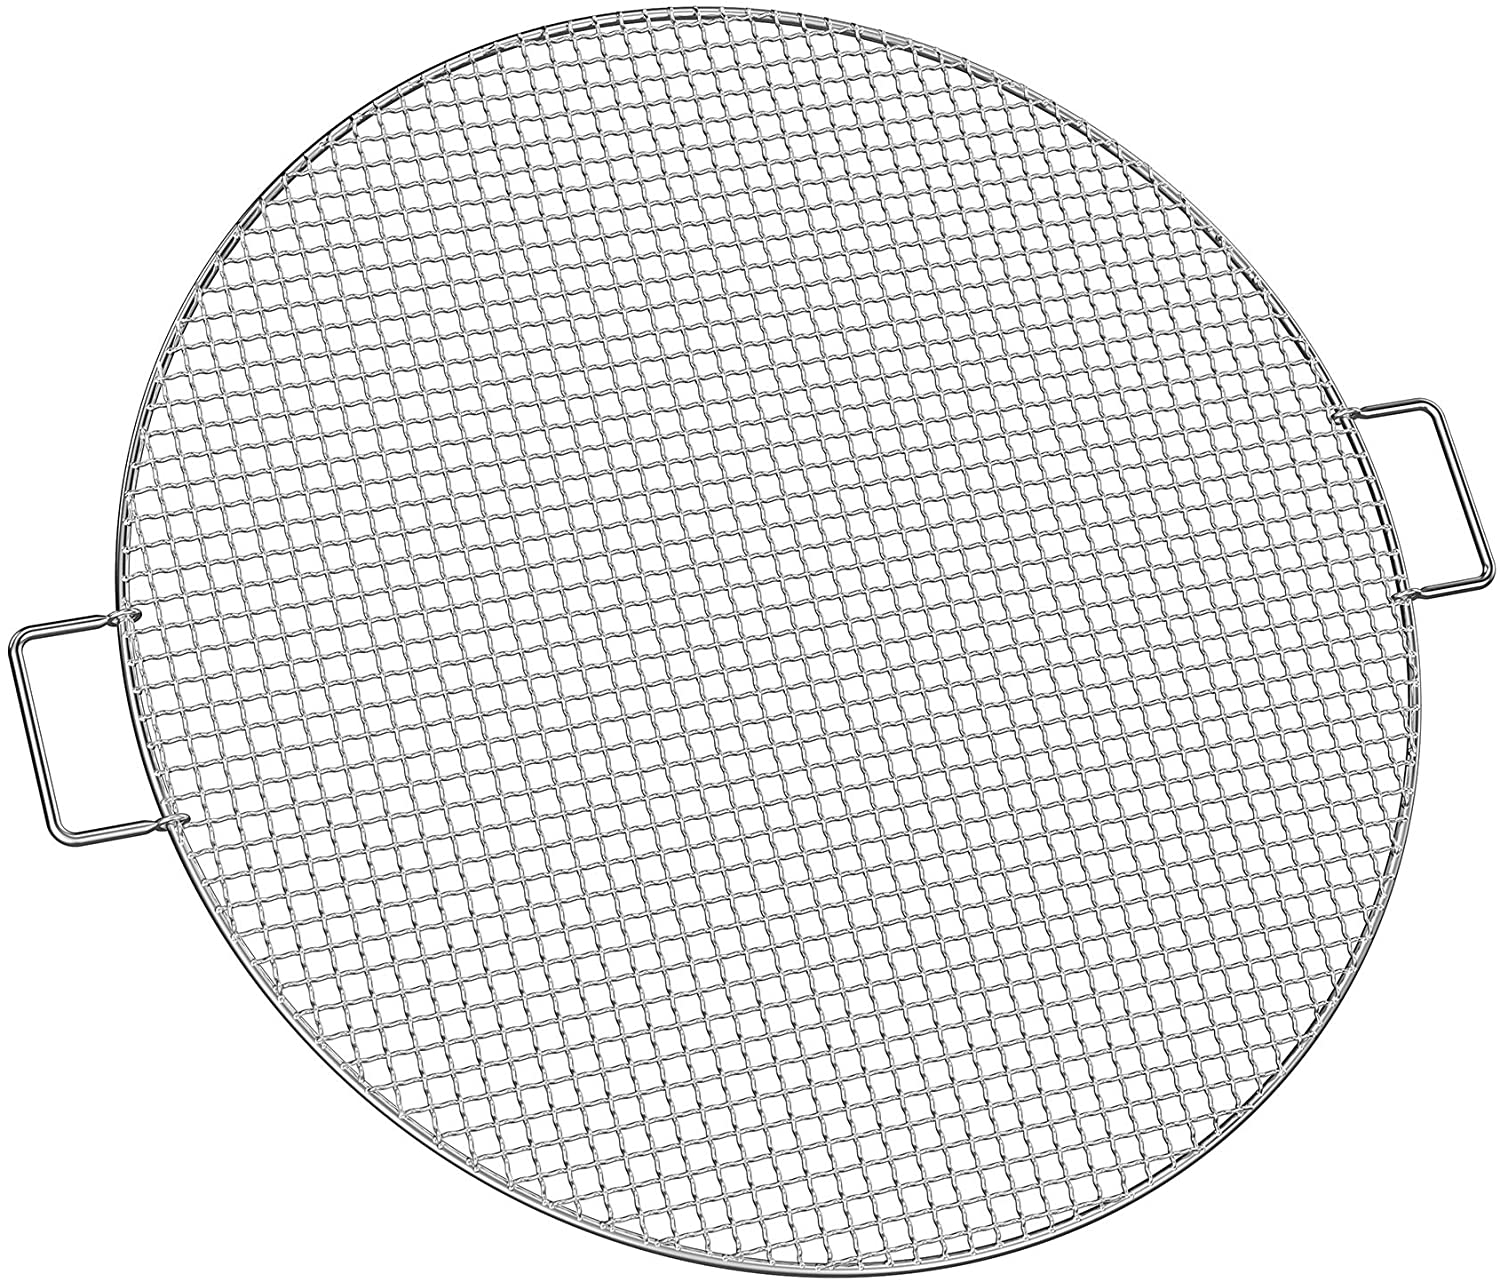 Stanbroil Fire Pit Cooking Grill Grate - Outdoor Round BBQ Campfire Grill Grid - Camping Cookware - Stainless Steel, 24 Inch